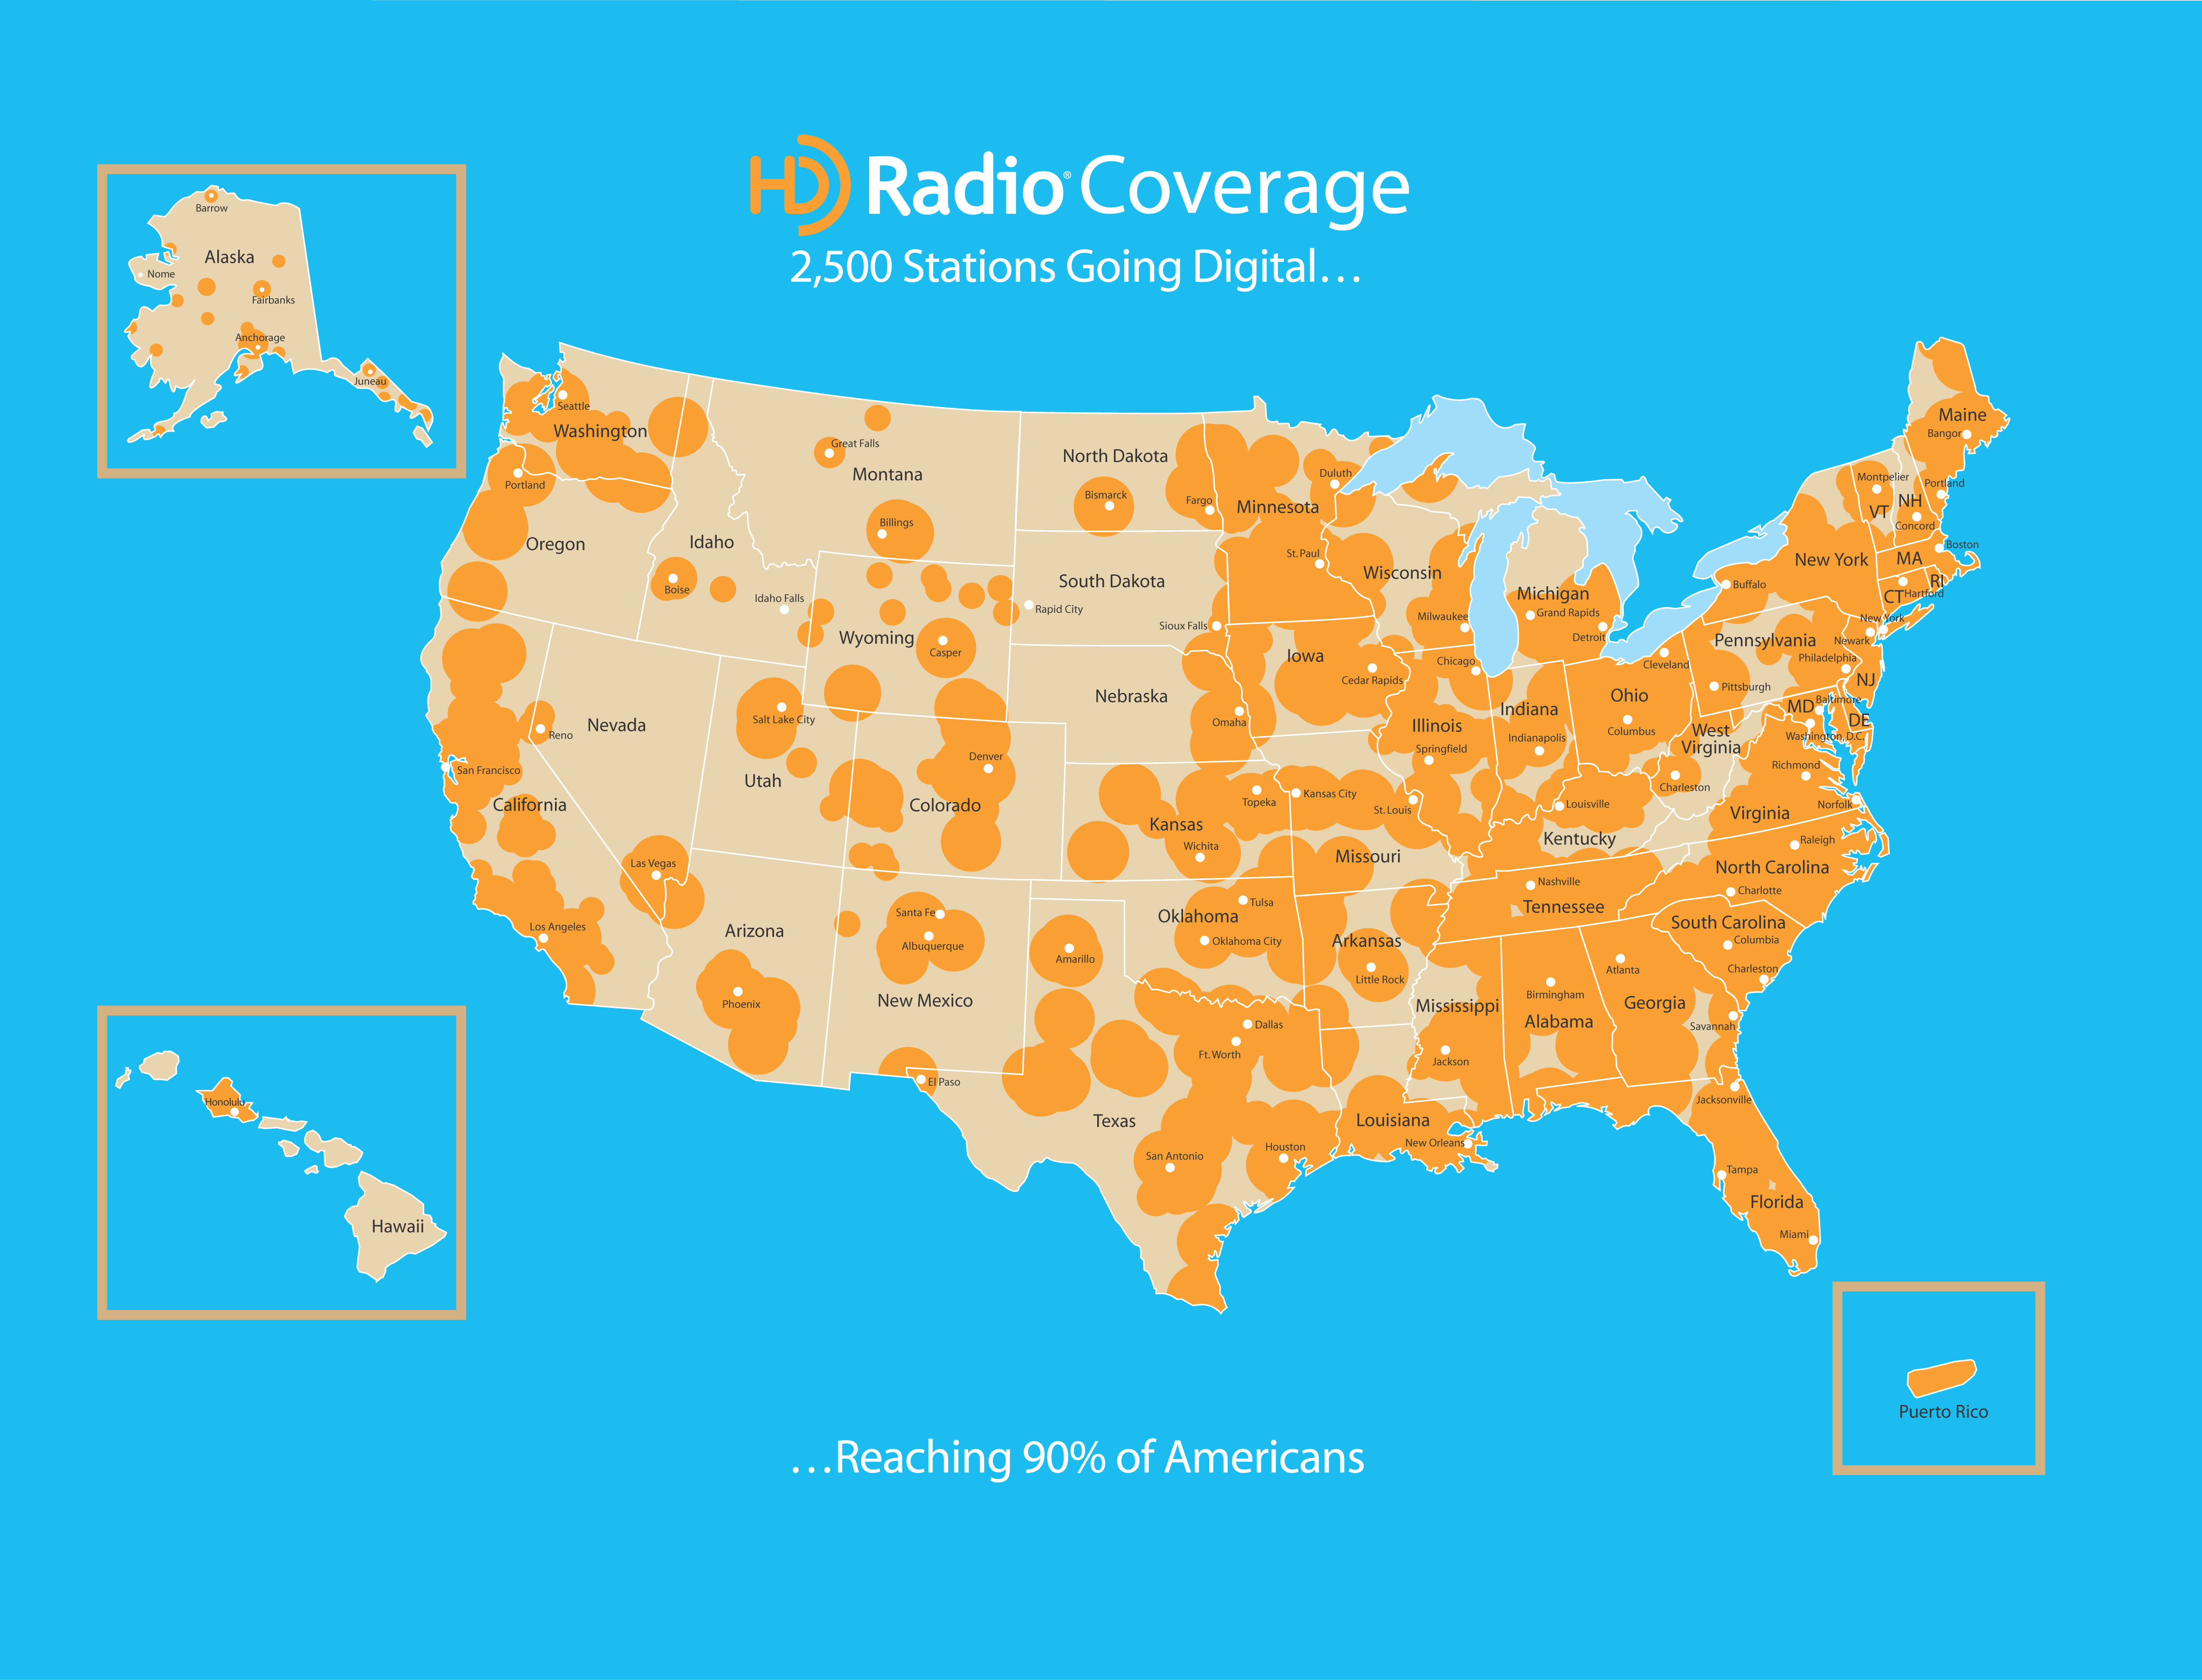 HDRadioCoverageMap REAL DEAL AUTO BLOG - Georgia map hd